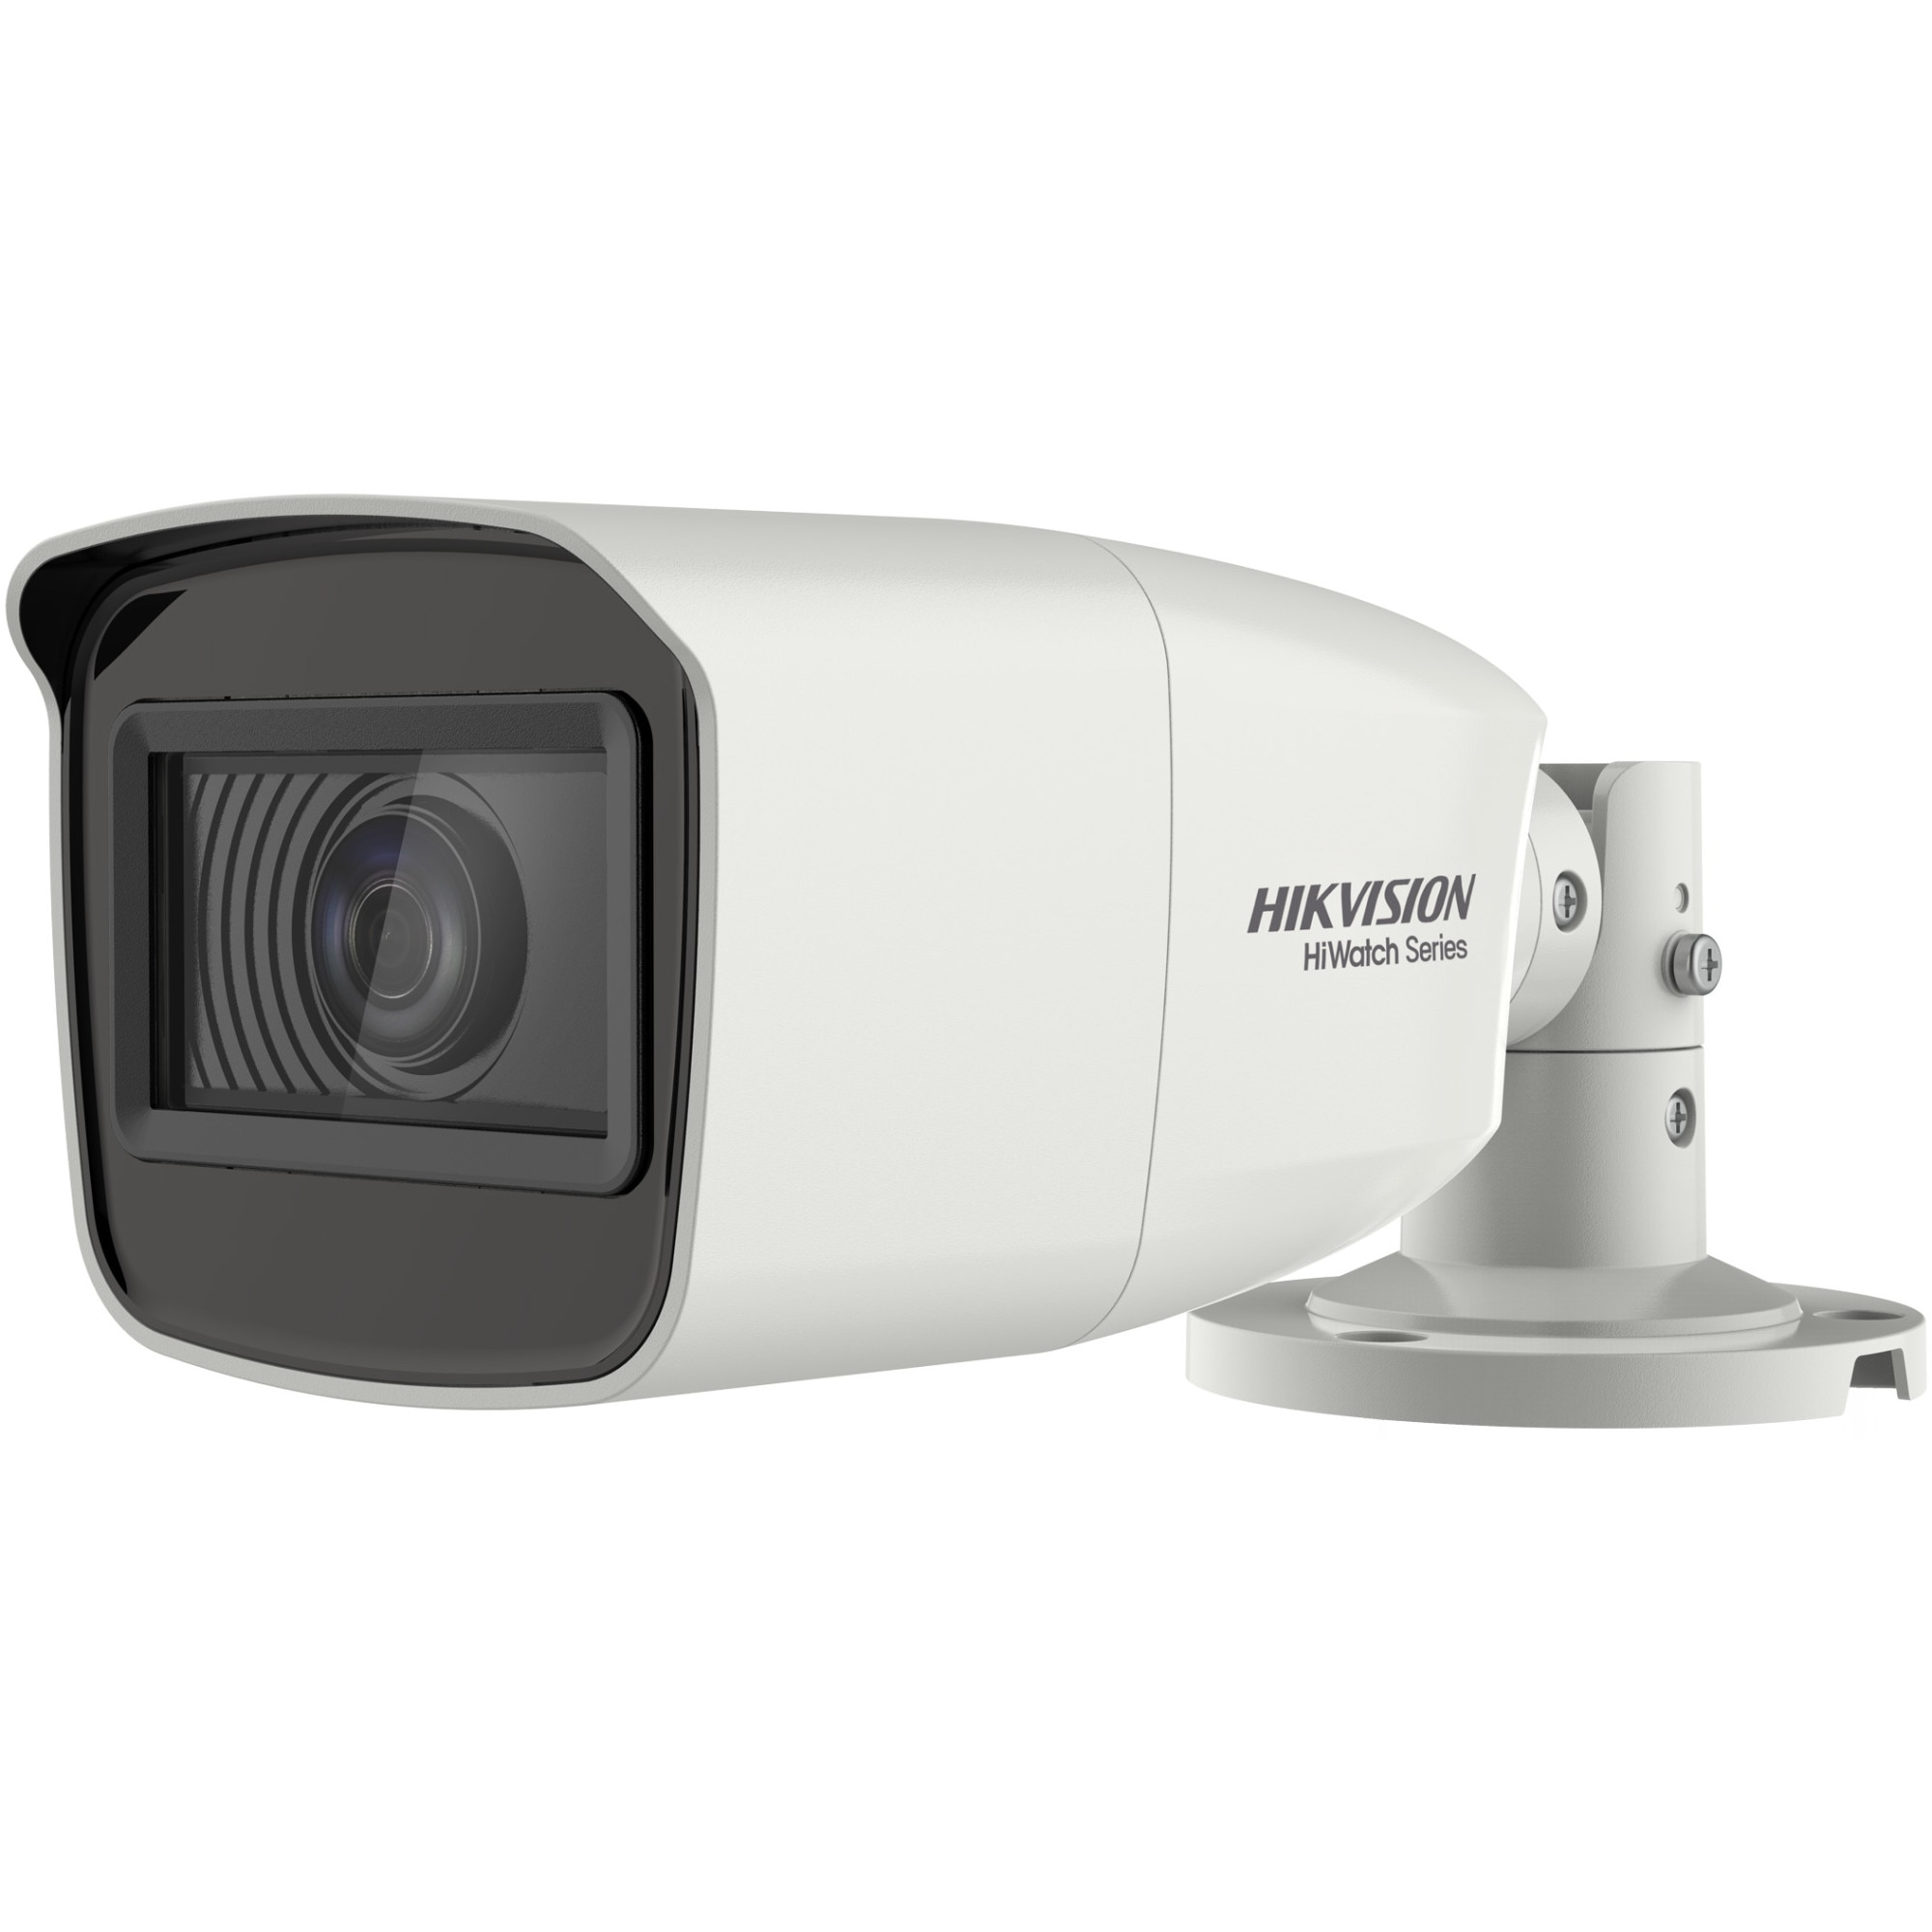 Fotografie Camera de supraveghere Hikvision HiWatch Turbo HD Bullet, 2MP, 2.7-13.5mm Vari Focal Lens, 70m IR, EXIR Bullet, IP66, Alb